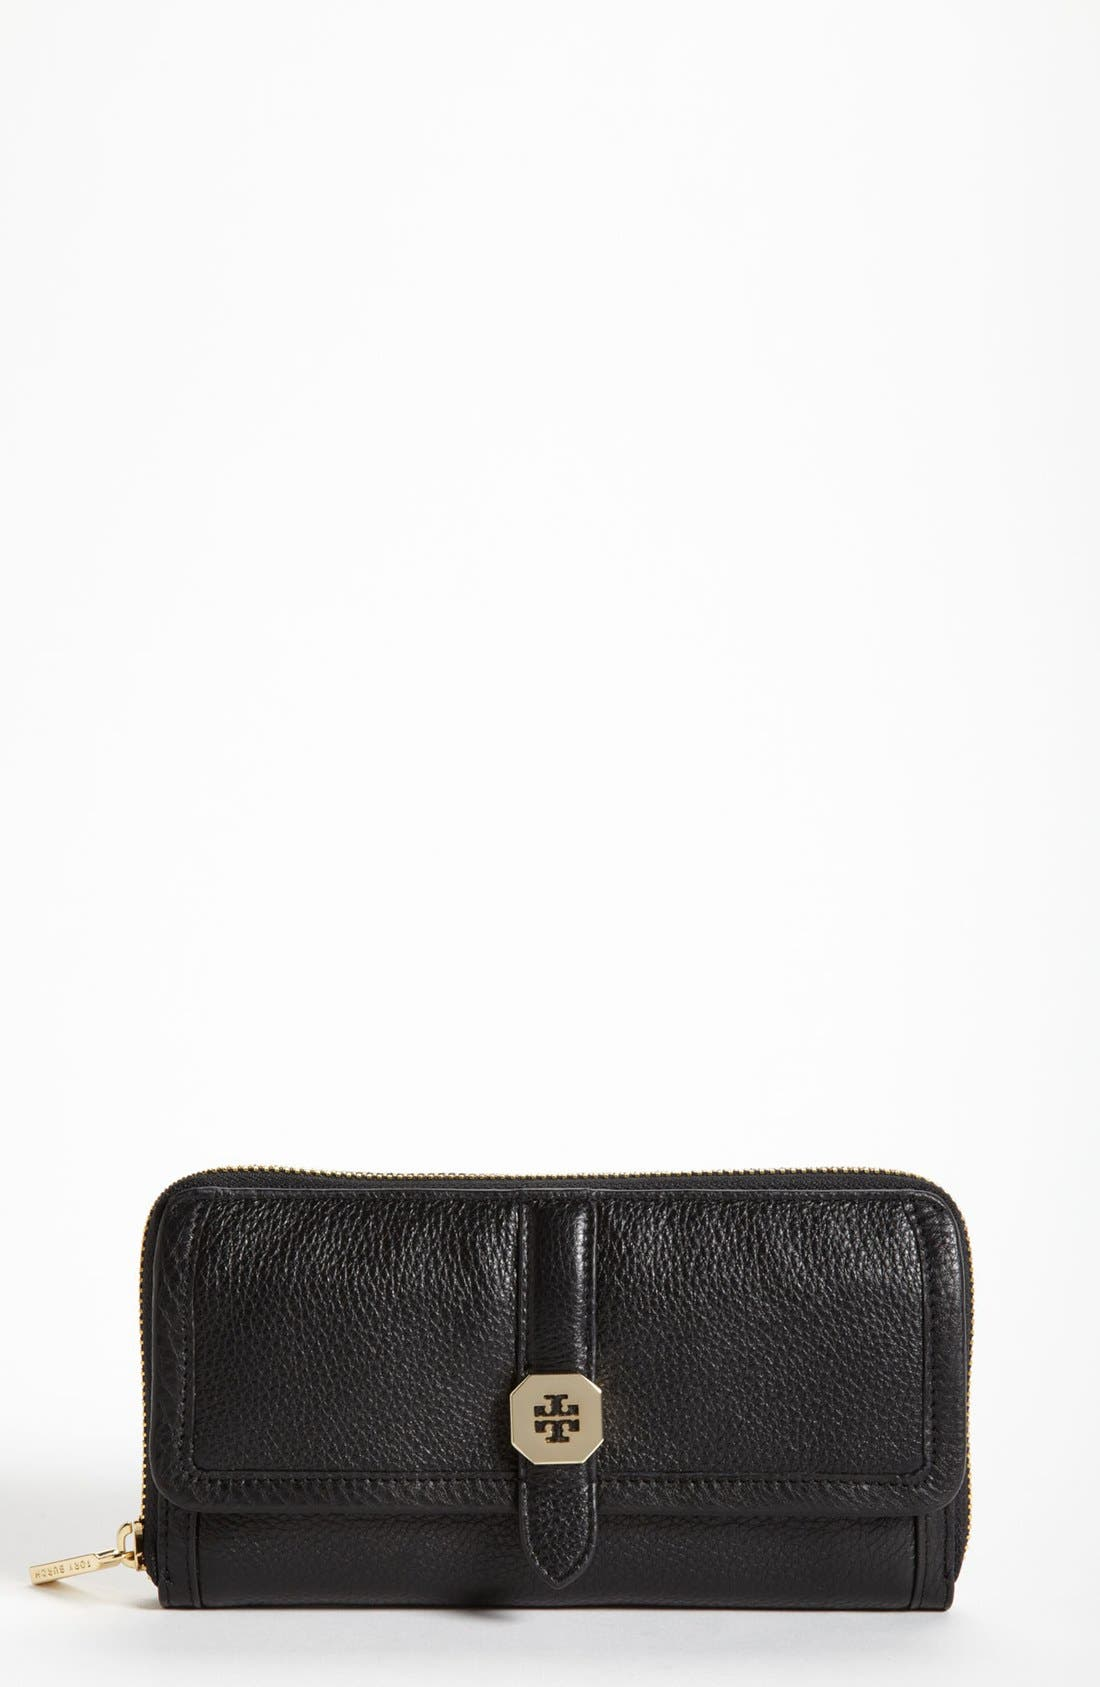 Main Image - Tory Burch 'Clay' Continental Leather Wallet